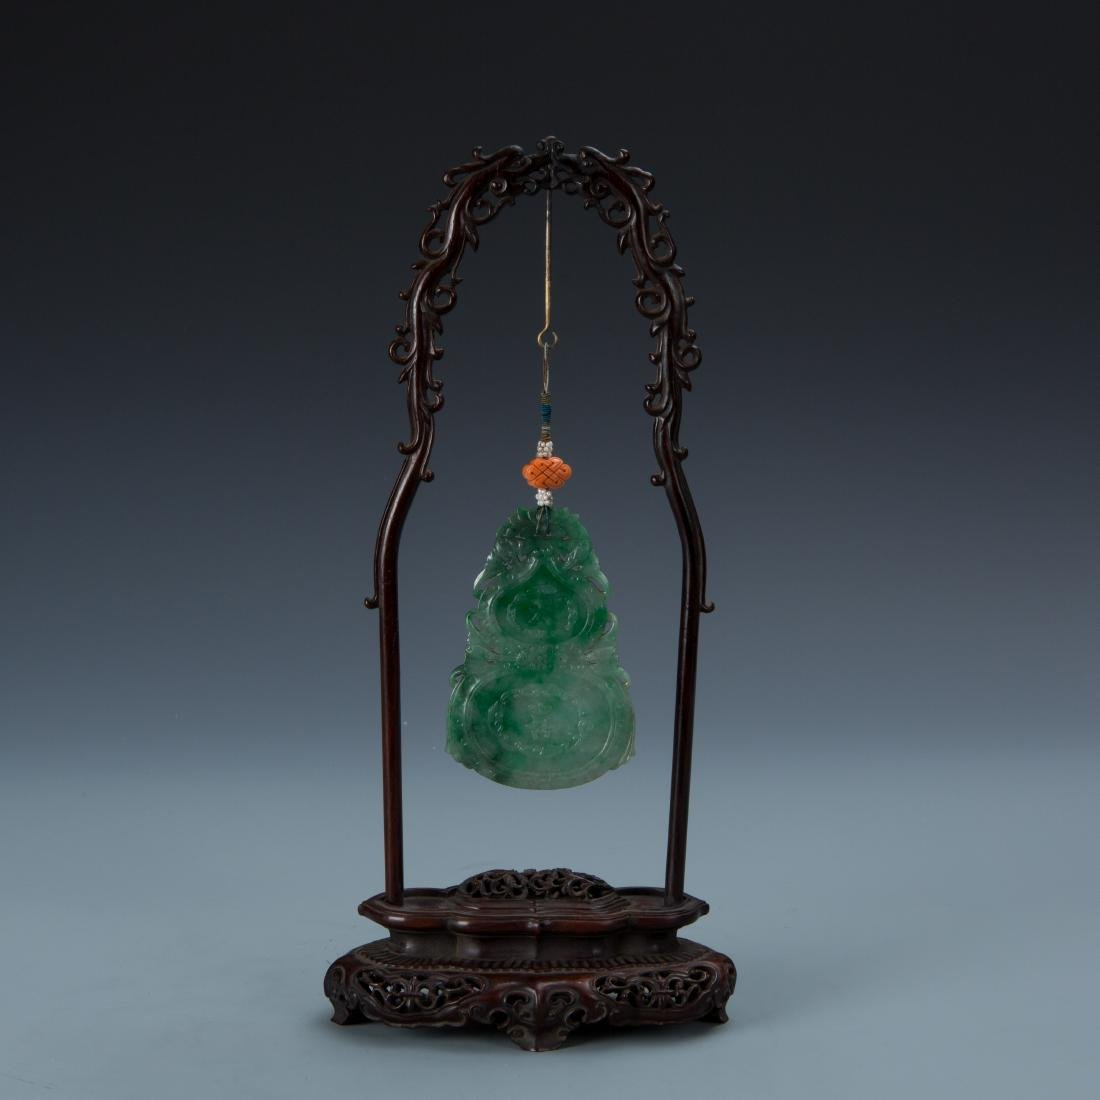 Double Gourd Jadeite Pendant with Coral and Pearl